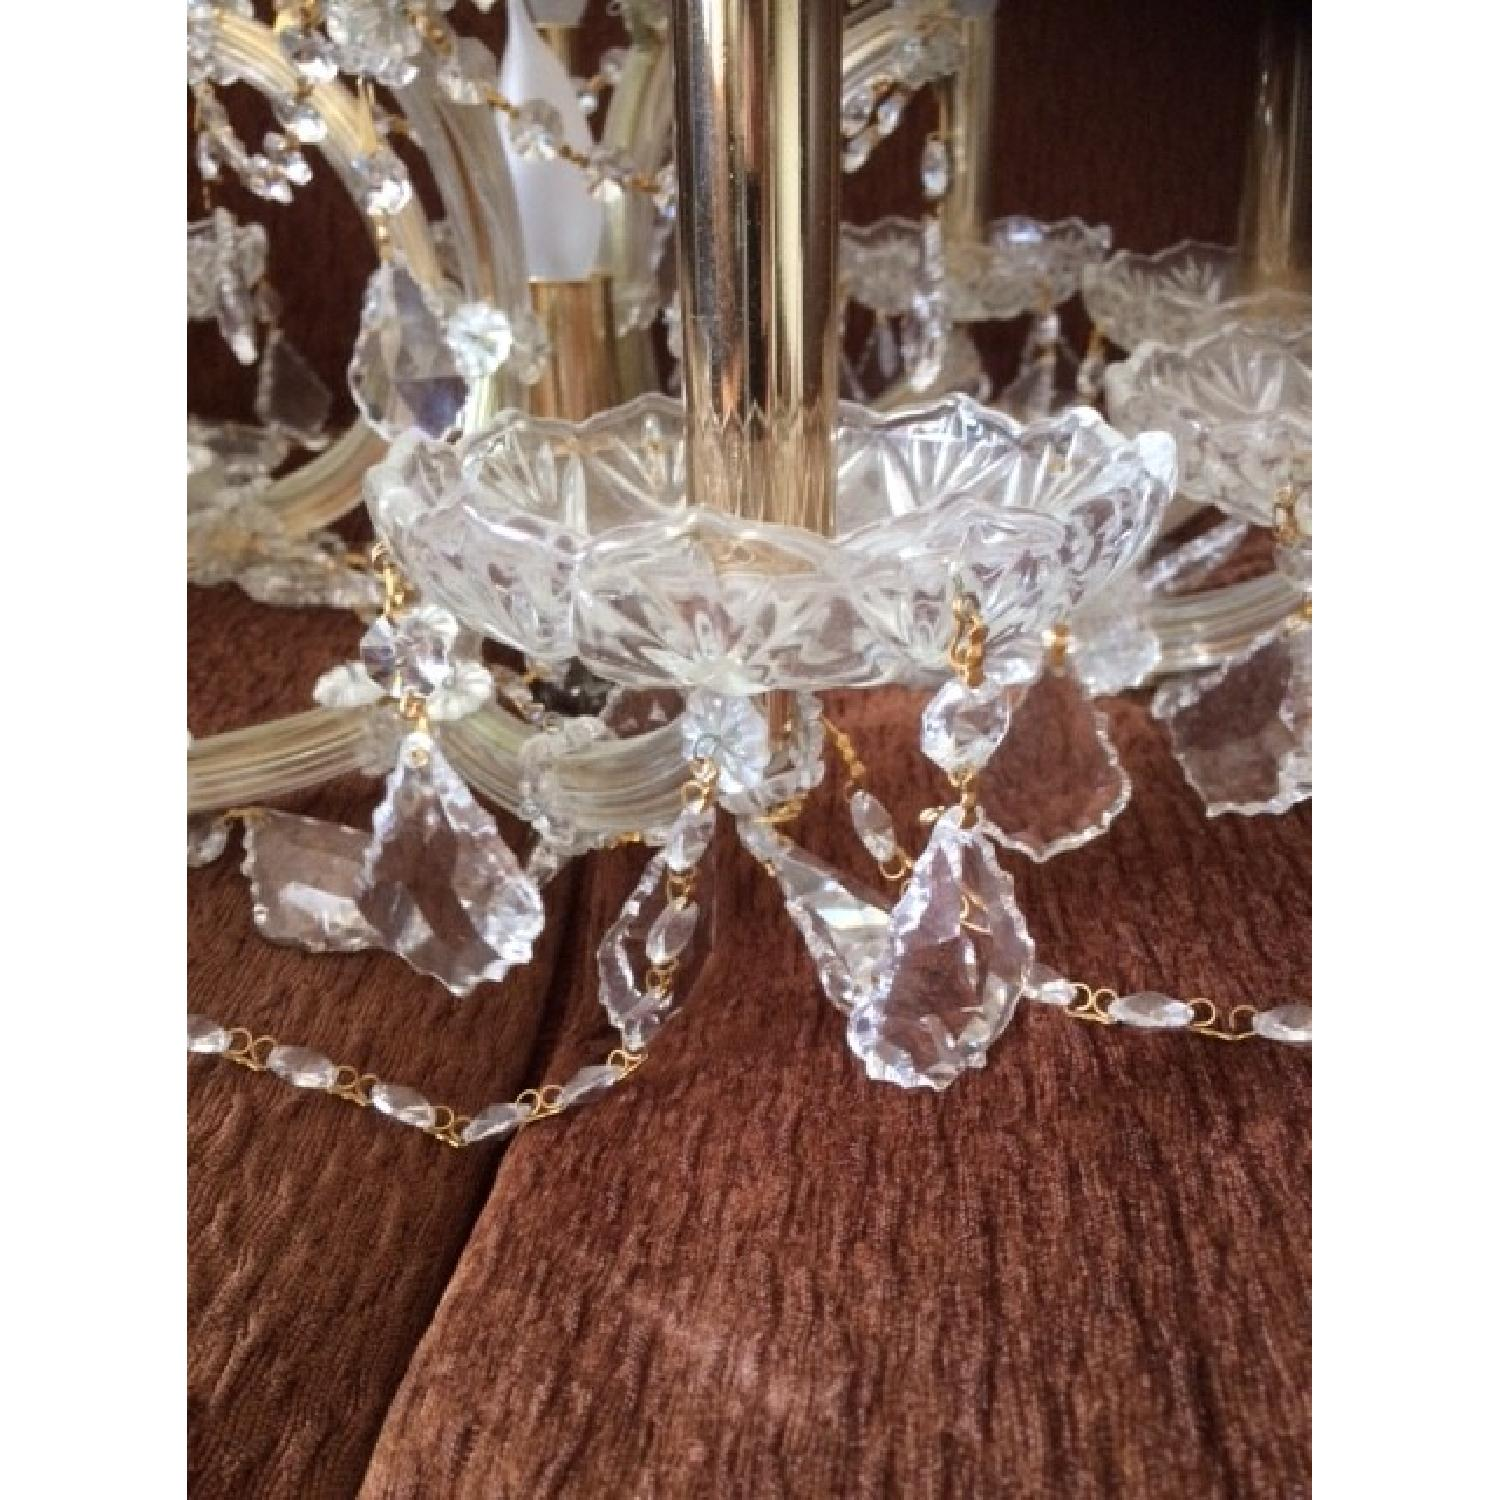 Palace 9 Light Maria Theresa Style Crystal Chandelier - image-4